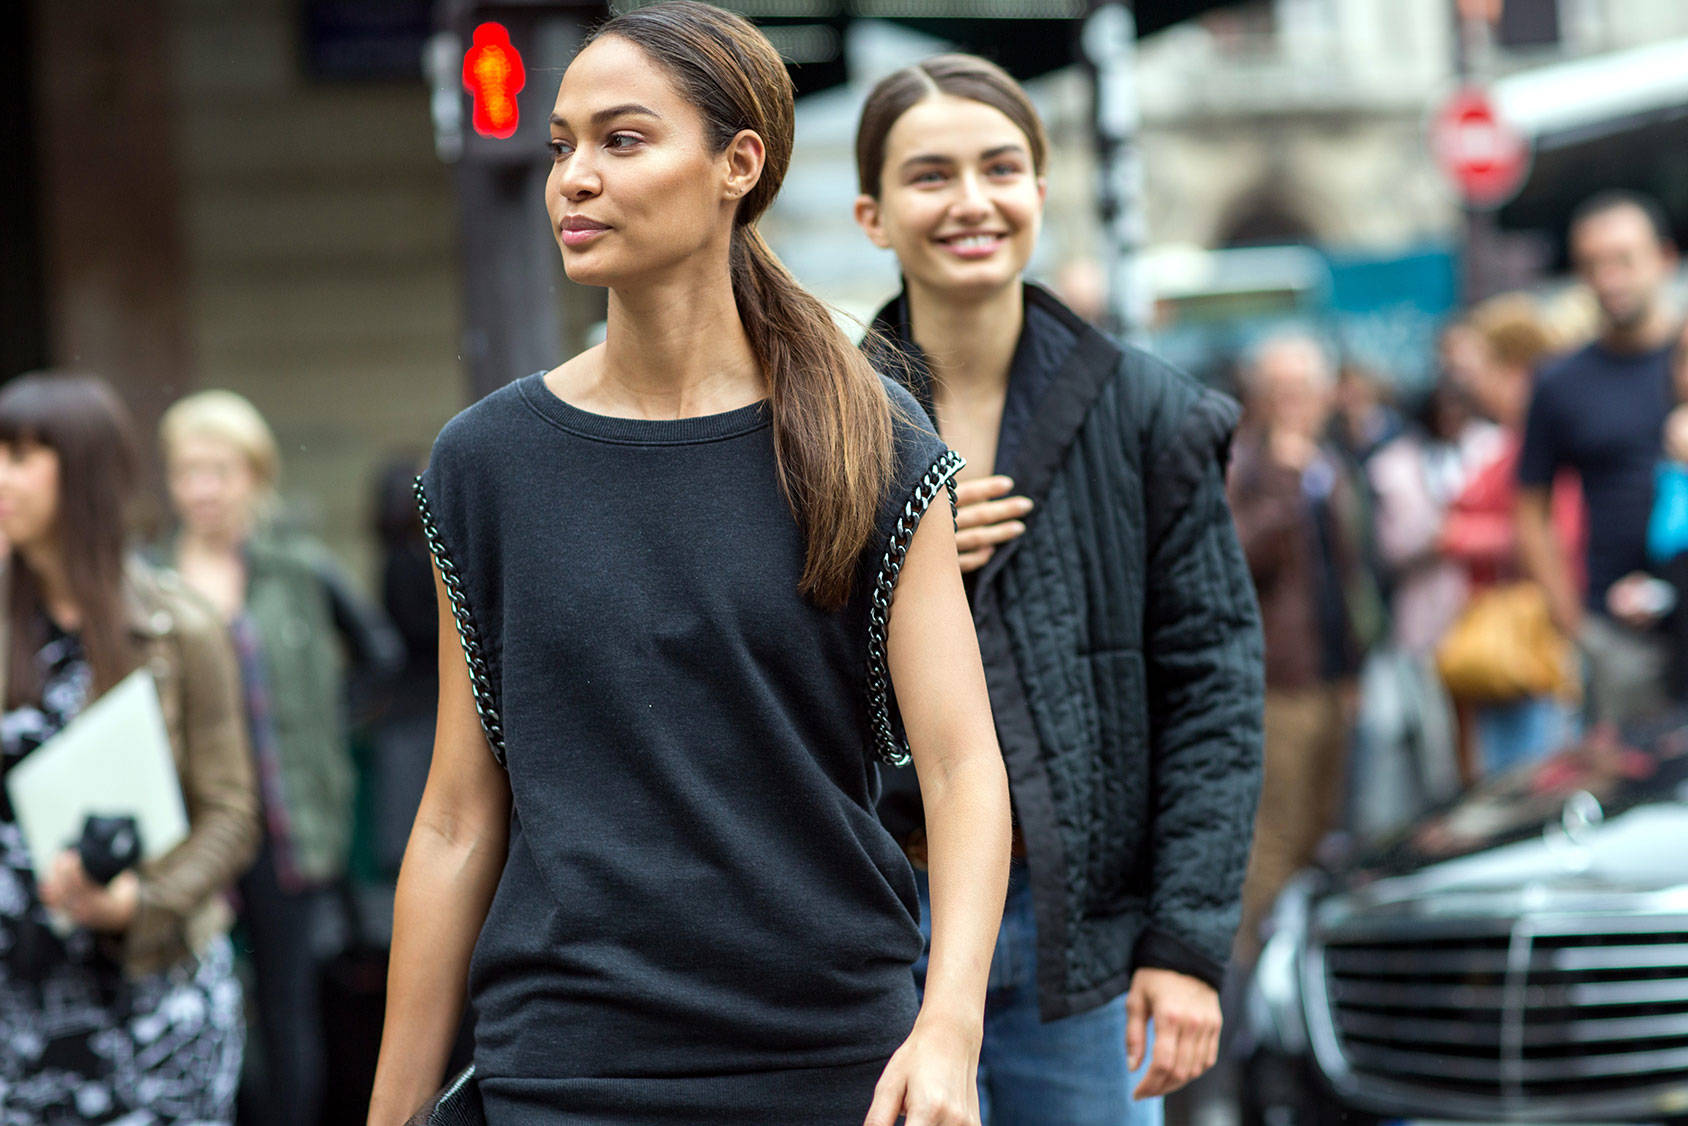 Models Joan Smalls and Andreea Diaconu off-duty at the Paris fashion week, spring/summer 2015, All Over Press.